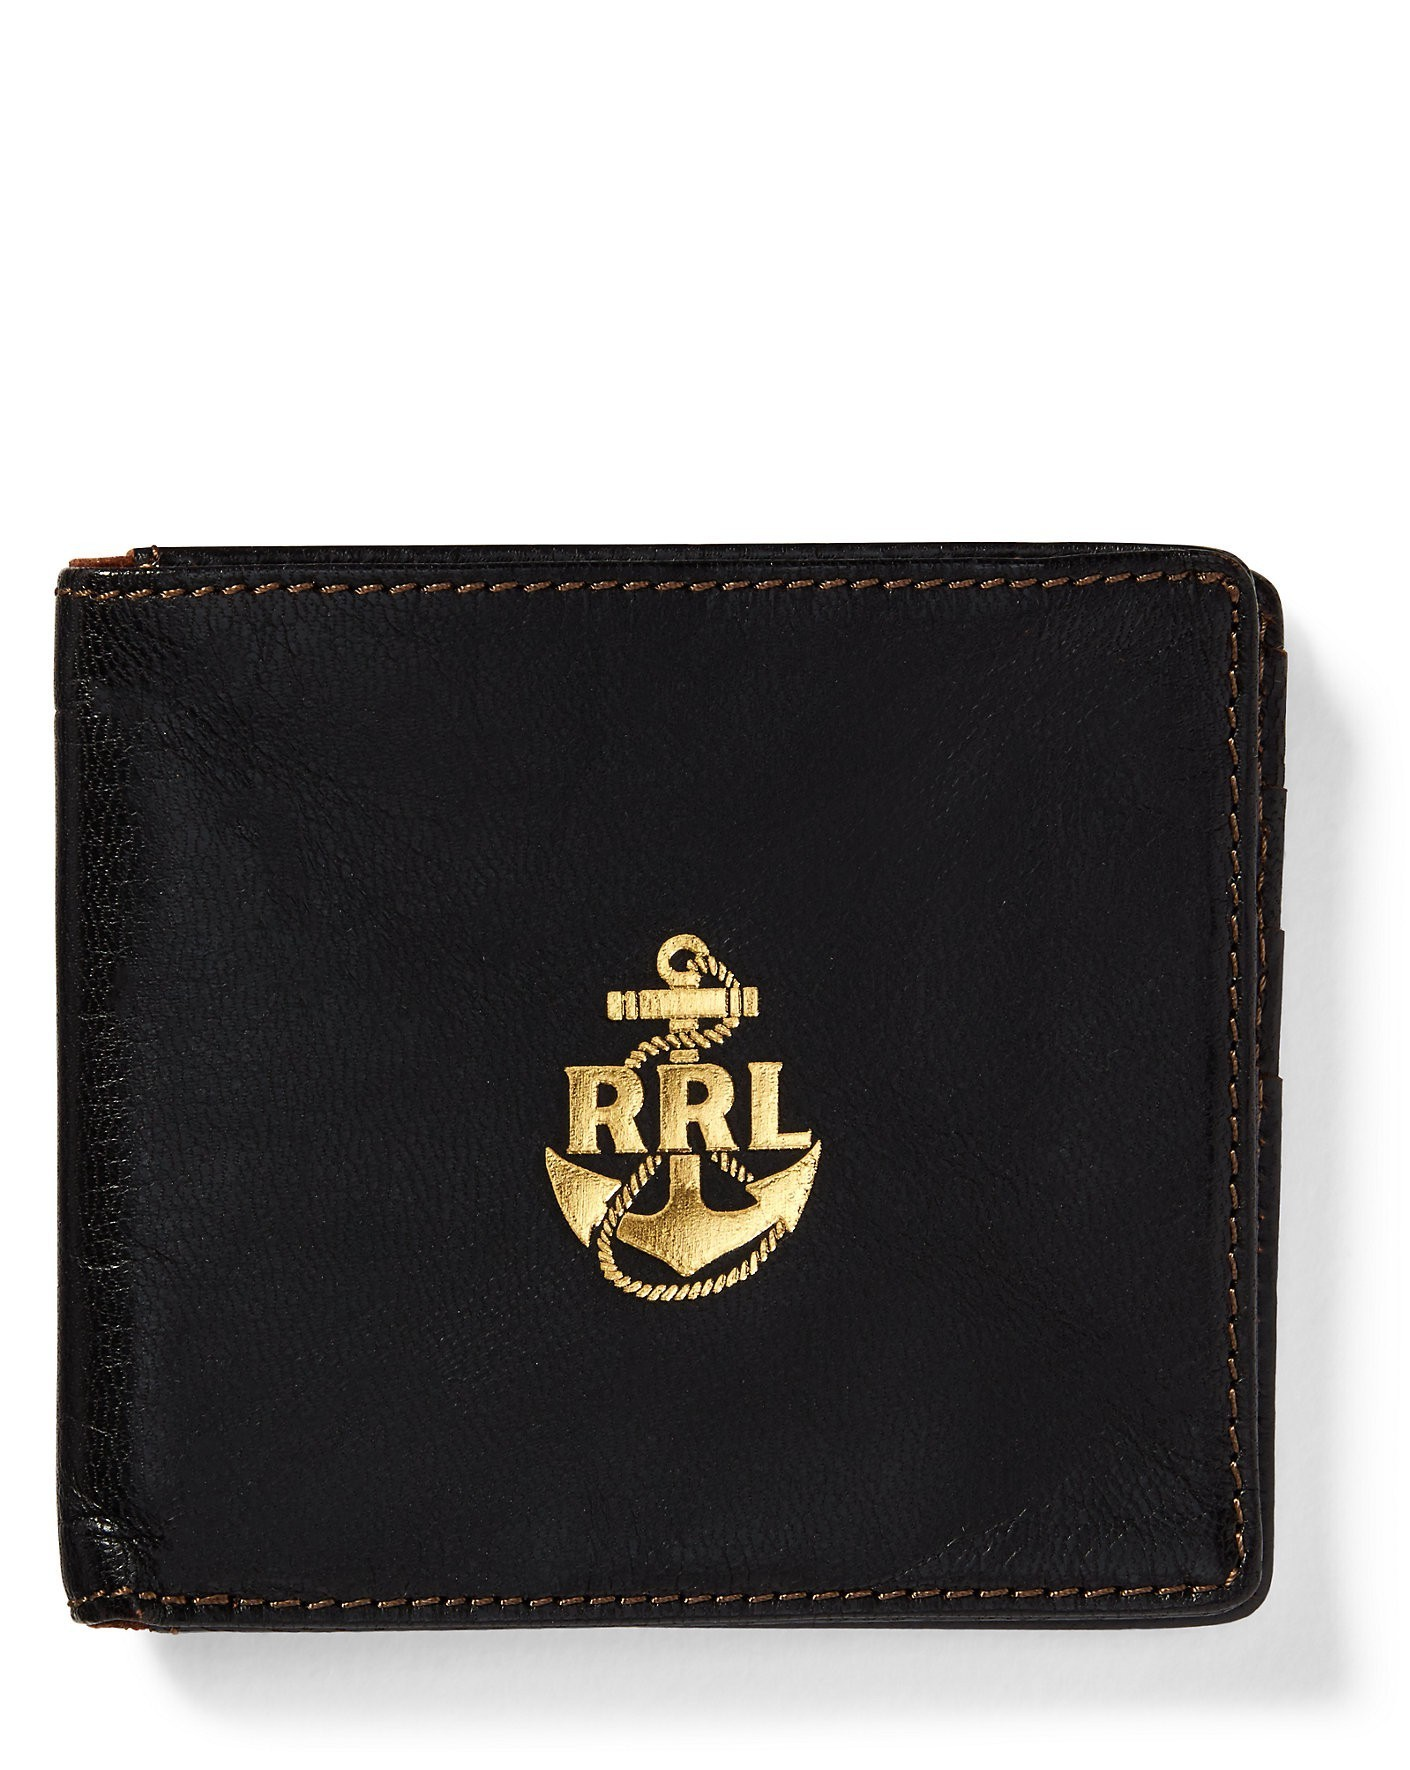 "関税込""Ralph Lauren""RRL Tumbled Leather Billfold メンズ 財布"